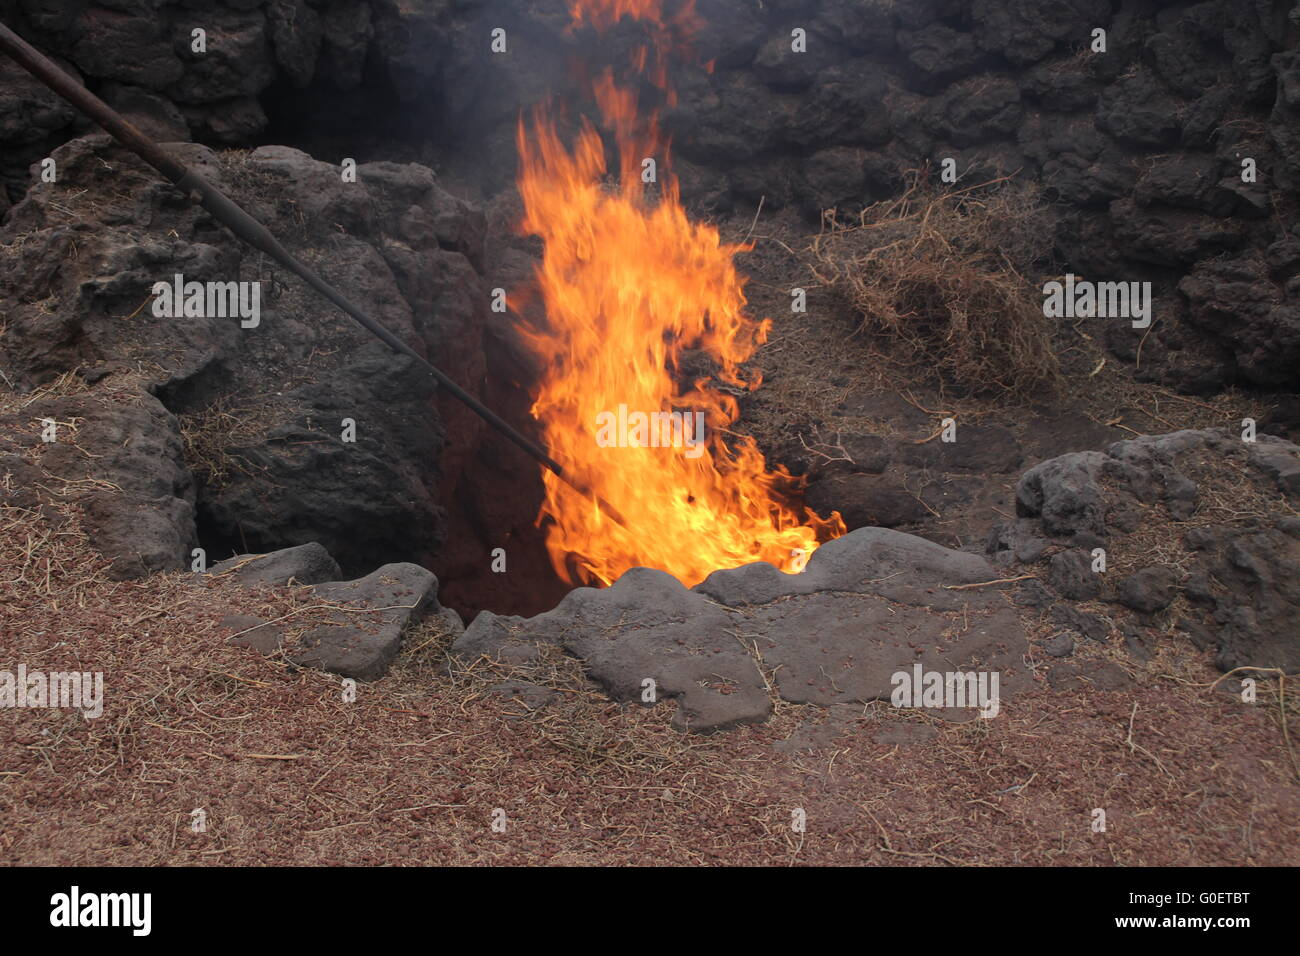 c8c5f5bee Fire In The Hole Stock Photos & Fire In The Hole Stock Images - Alamy